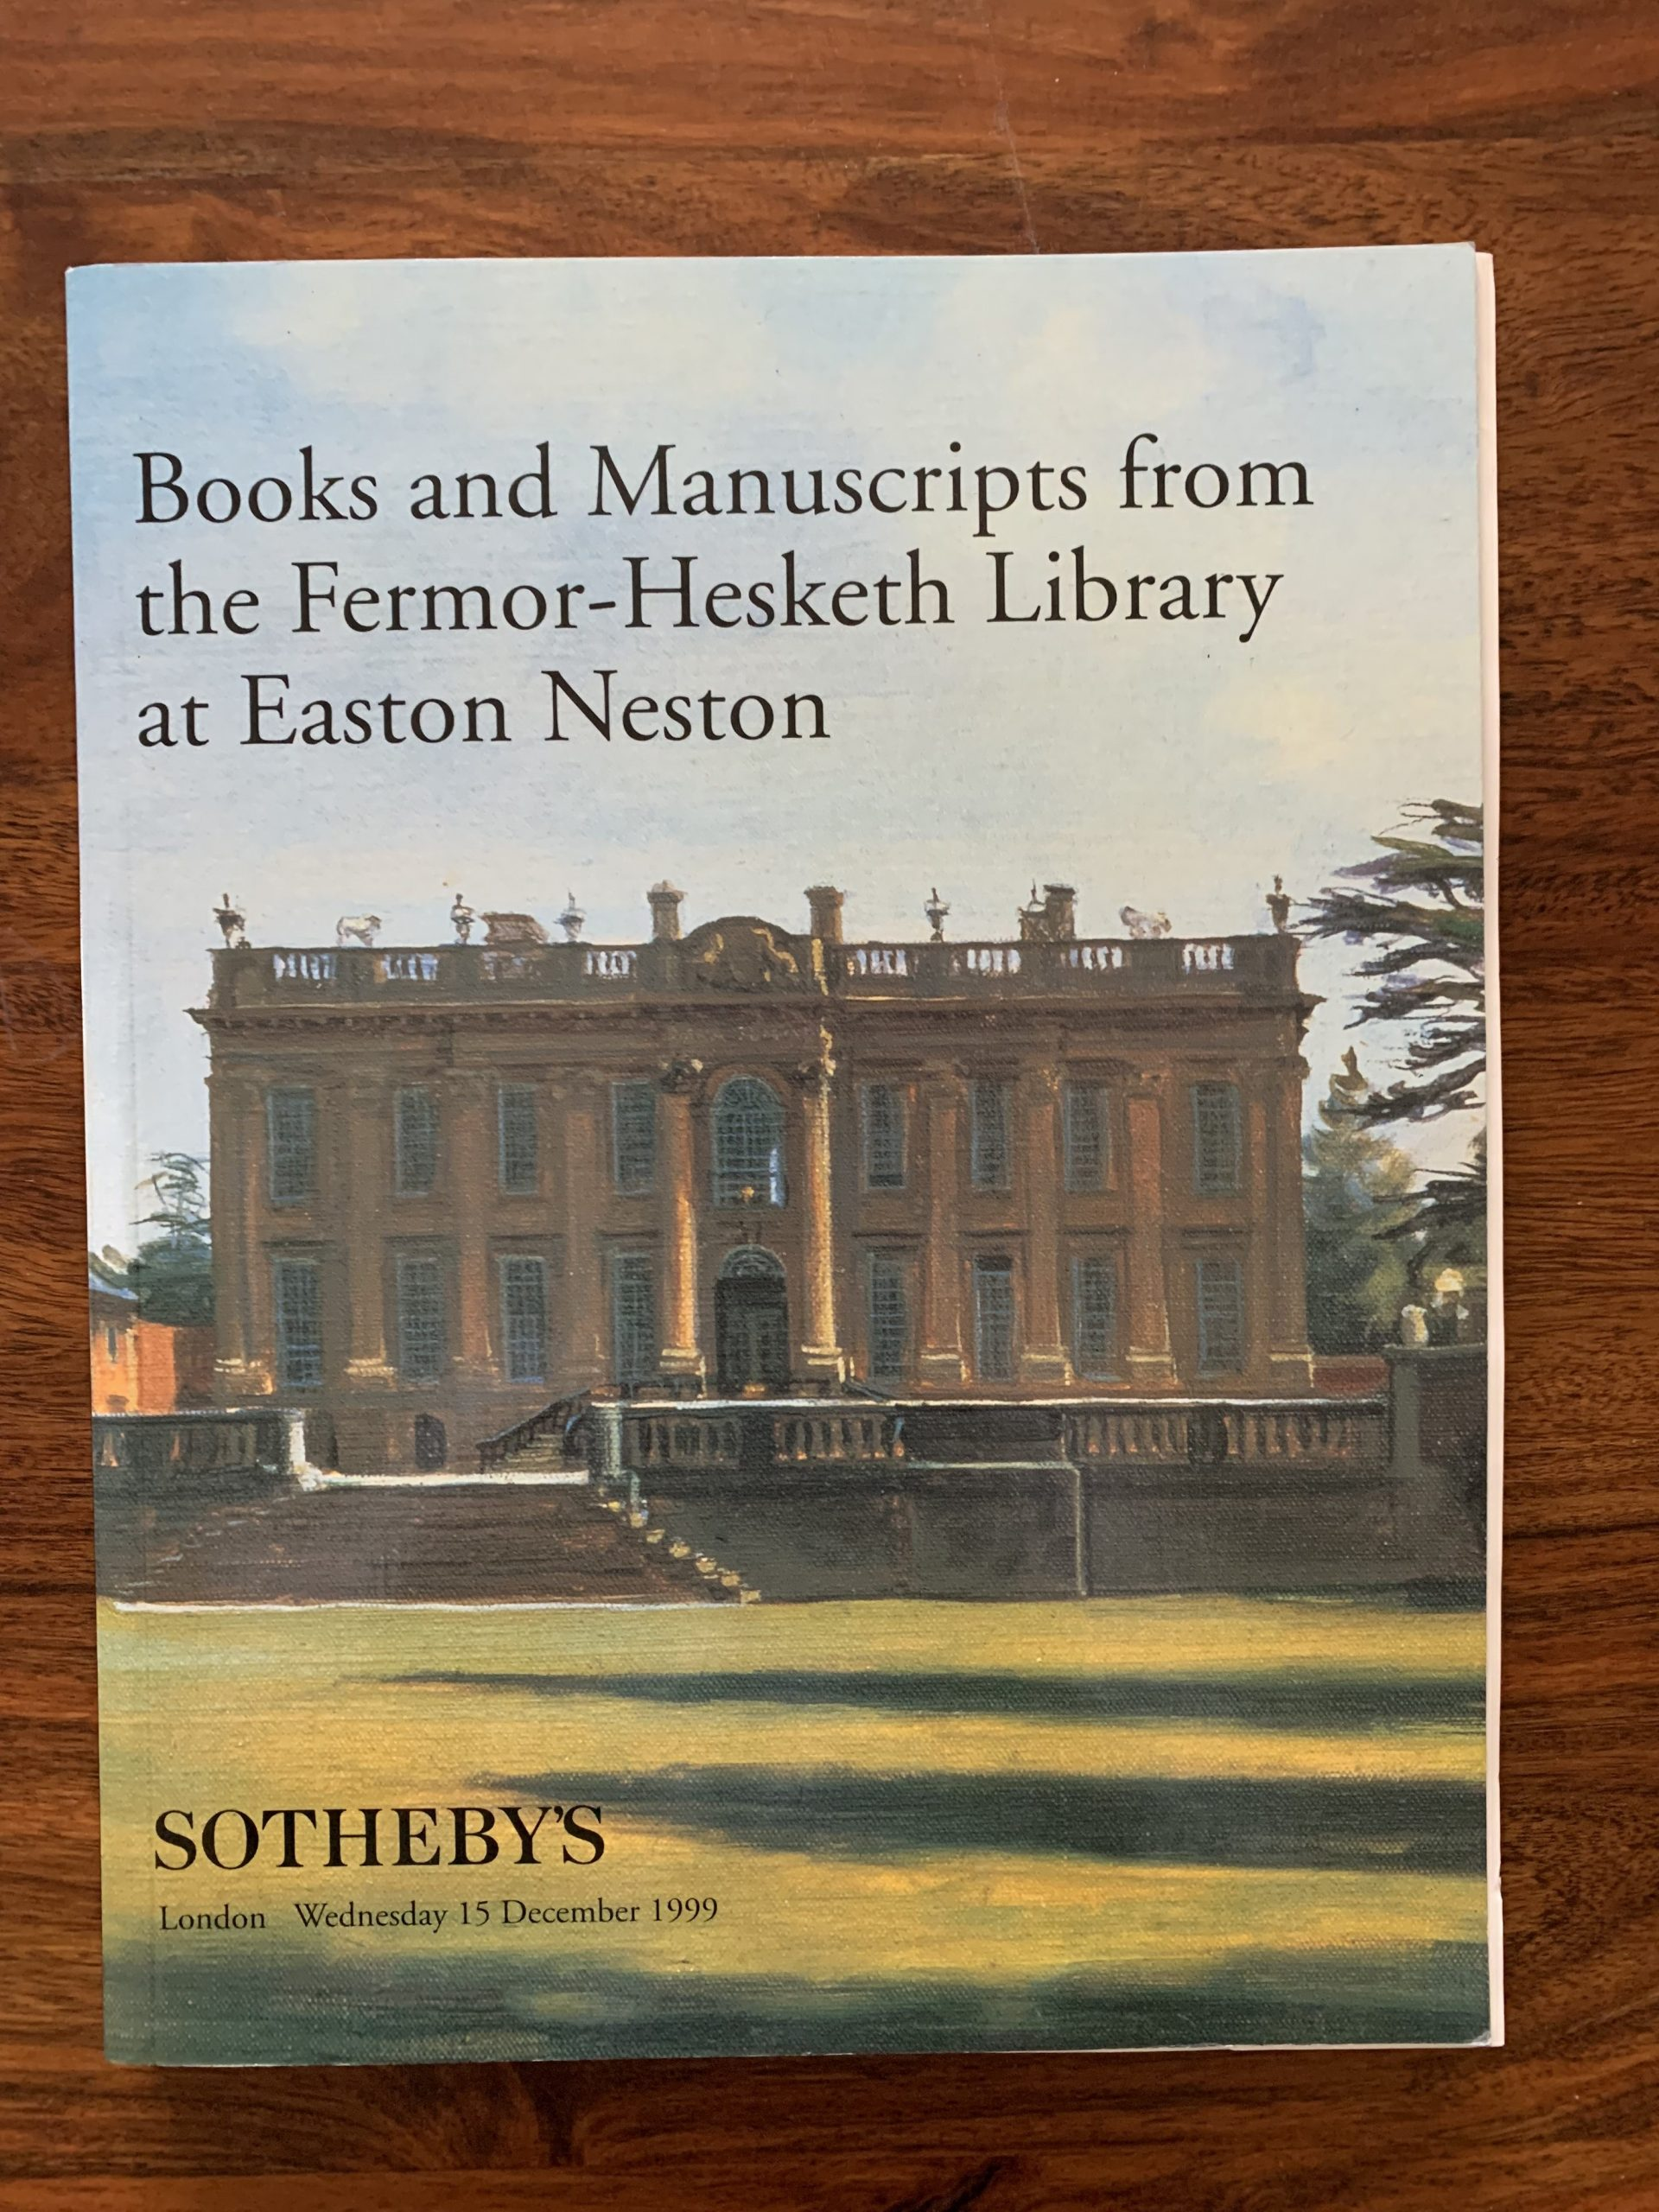 Sotheby's. Books and Manuscripts from the Fermor-Hesketh Library